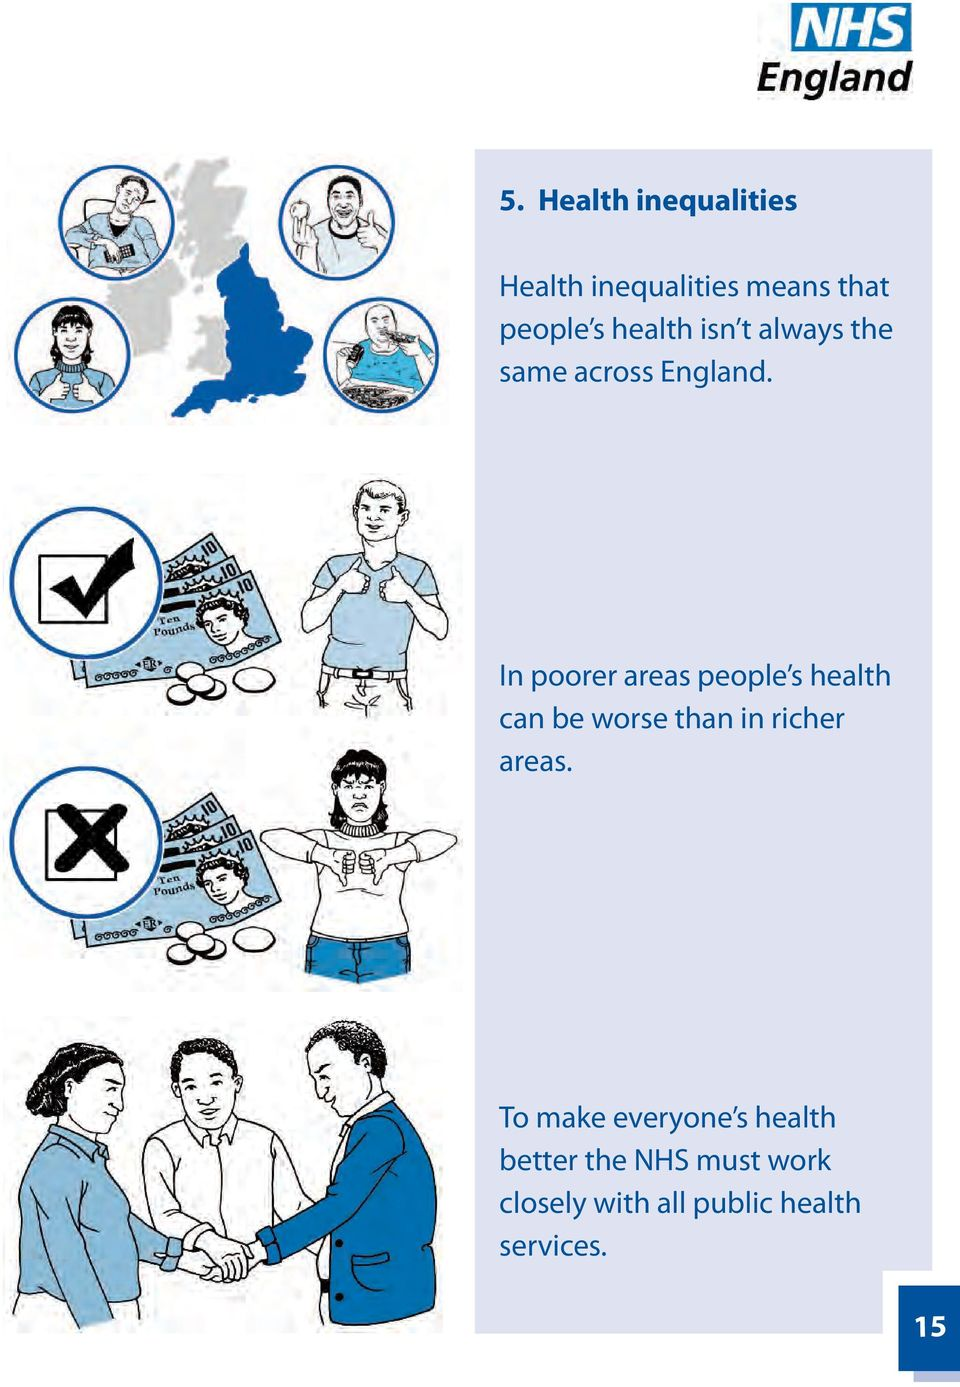 In poorer areas people s health can be worse than in richer areas.